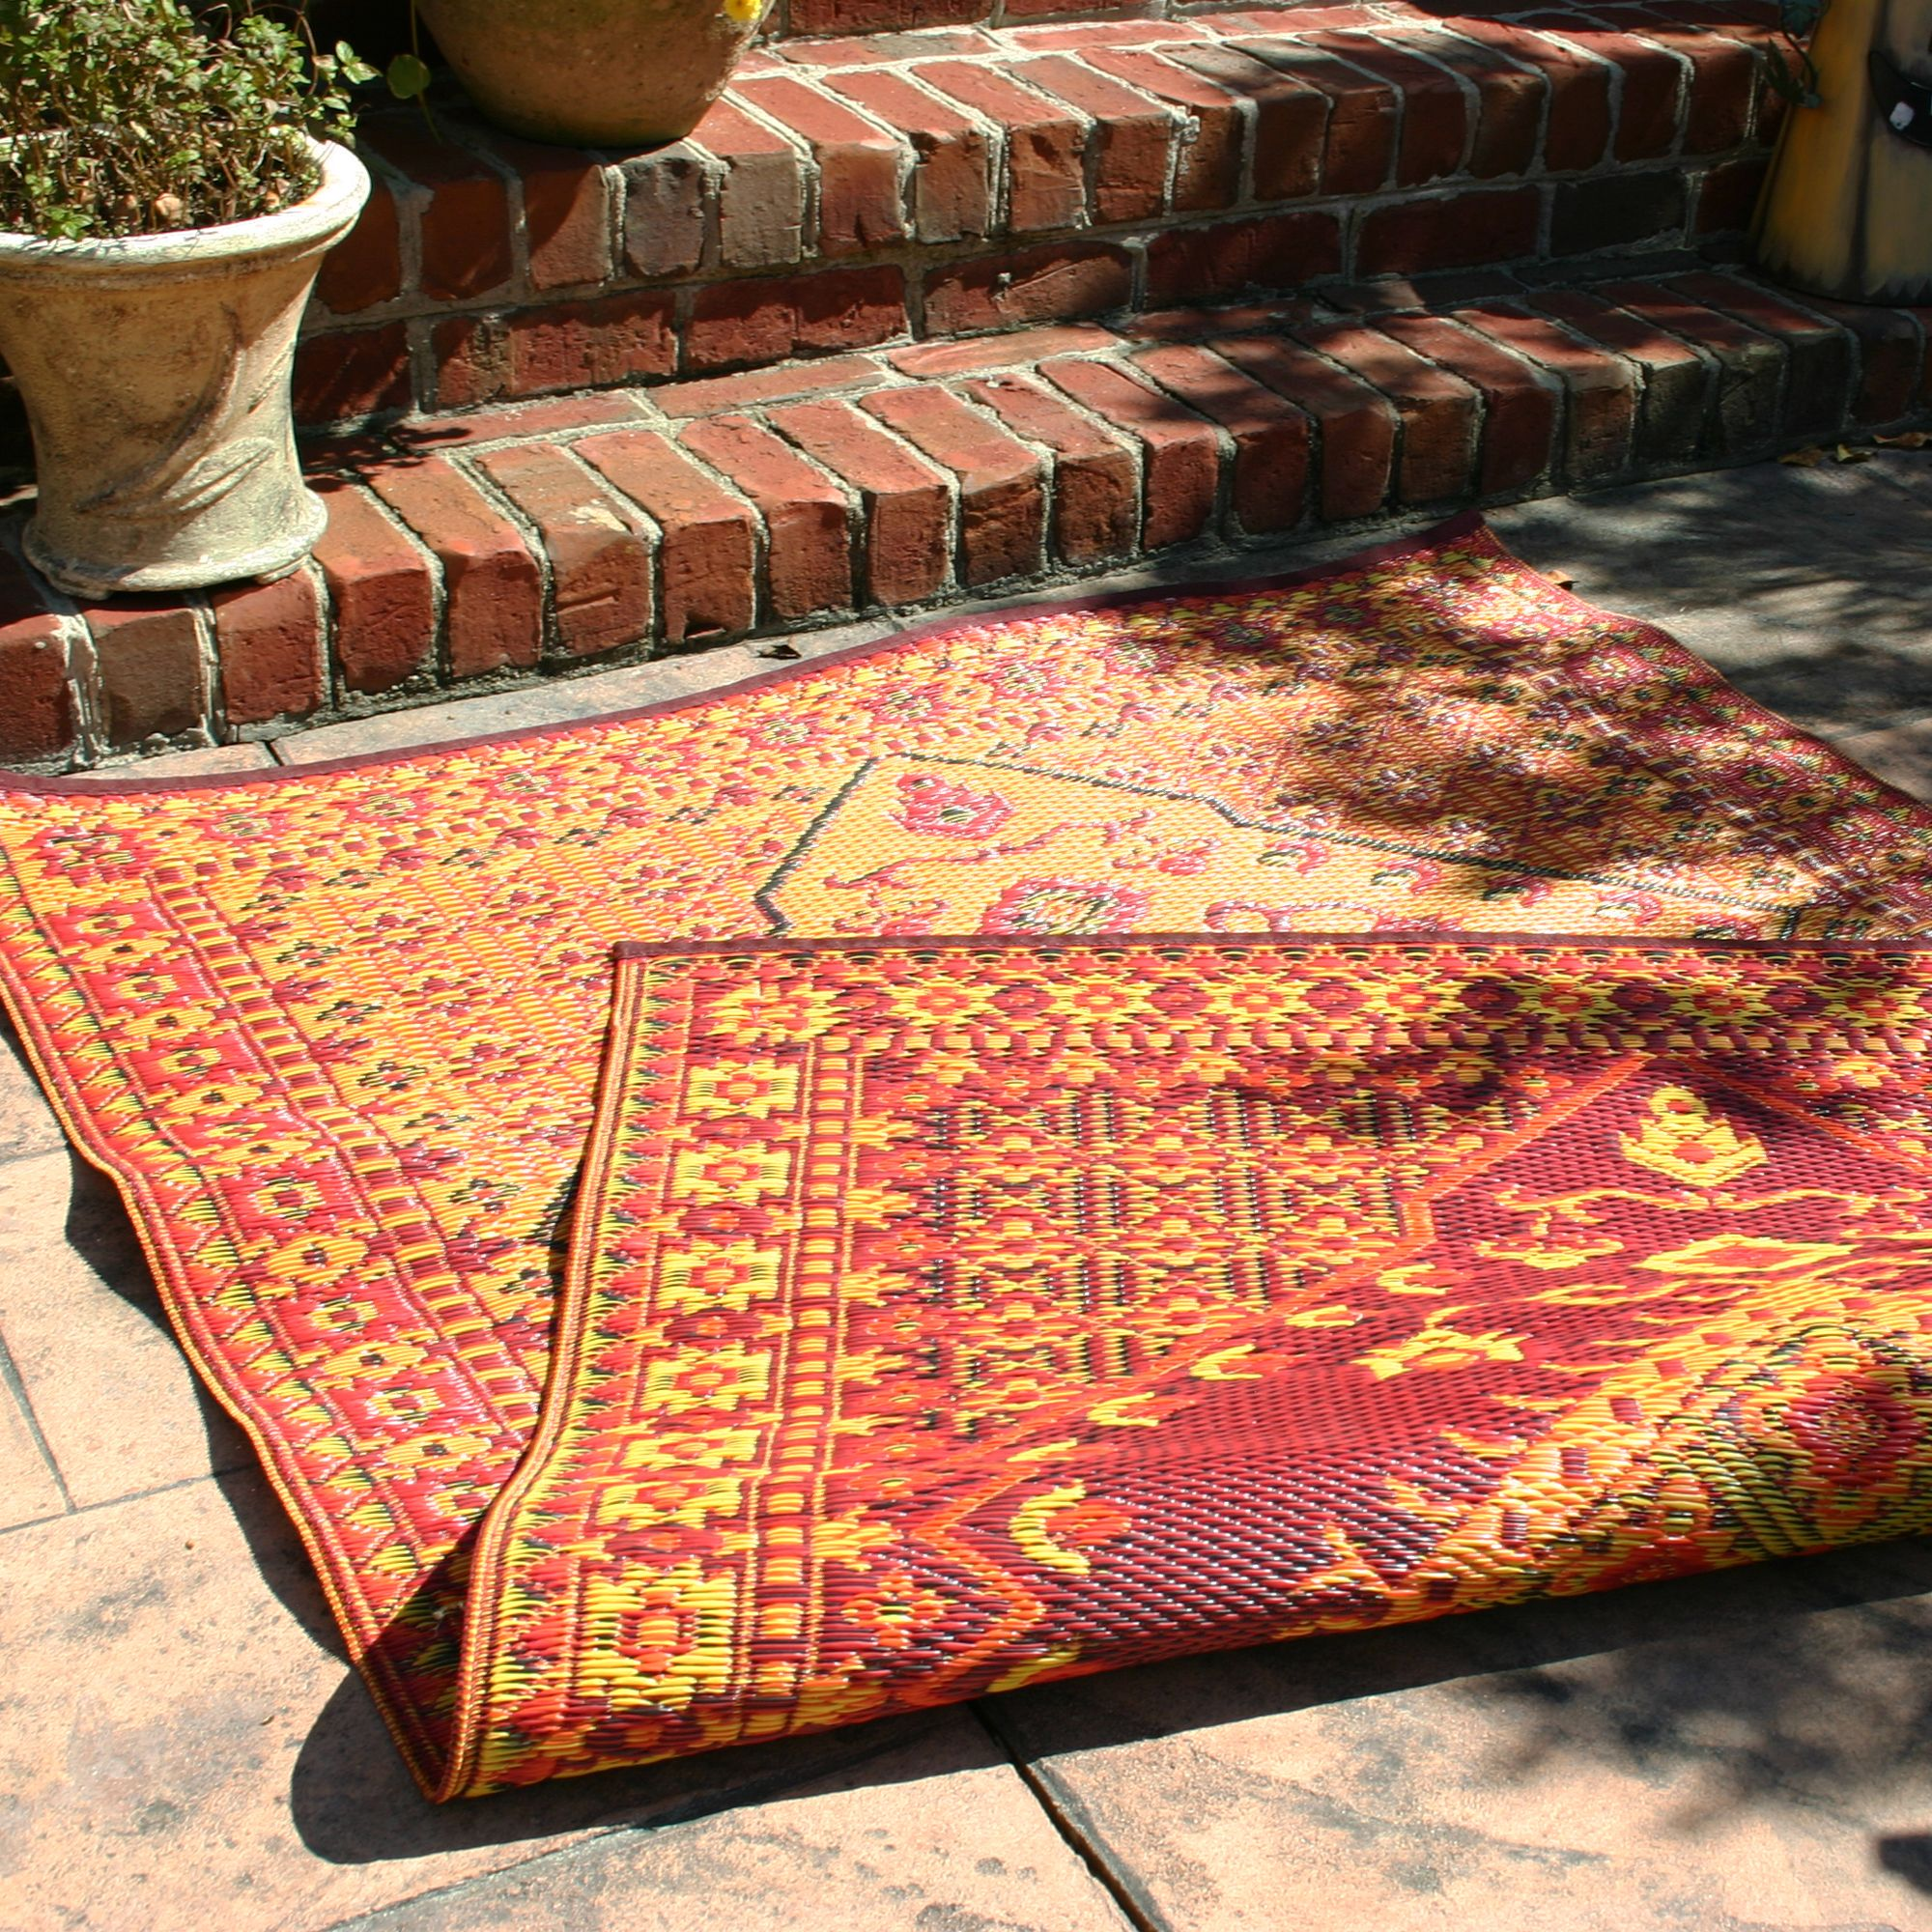 Plastic Outdoor Rug Mat: Mad Mats Outdoor Rug. Made From Recycled Plastic